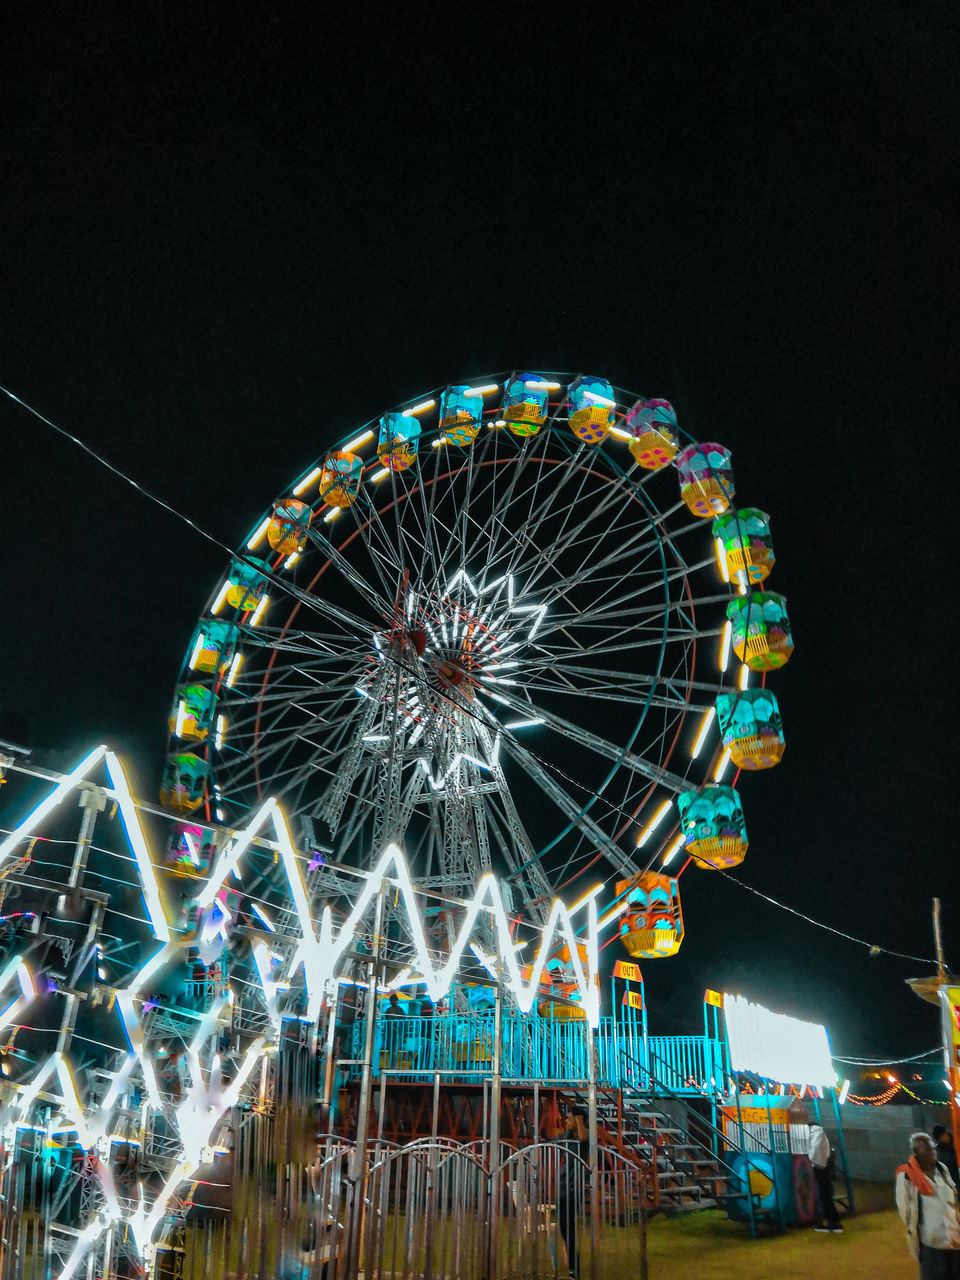 LOW ANGLE VIEW OF ILLUMINATED FERRIS WHEEL AGAINST SKY